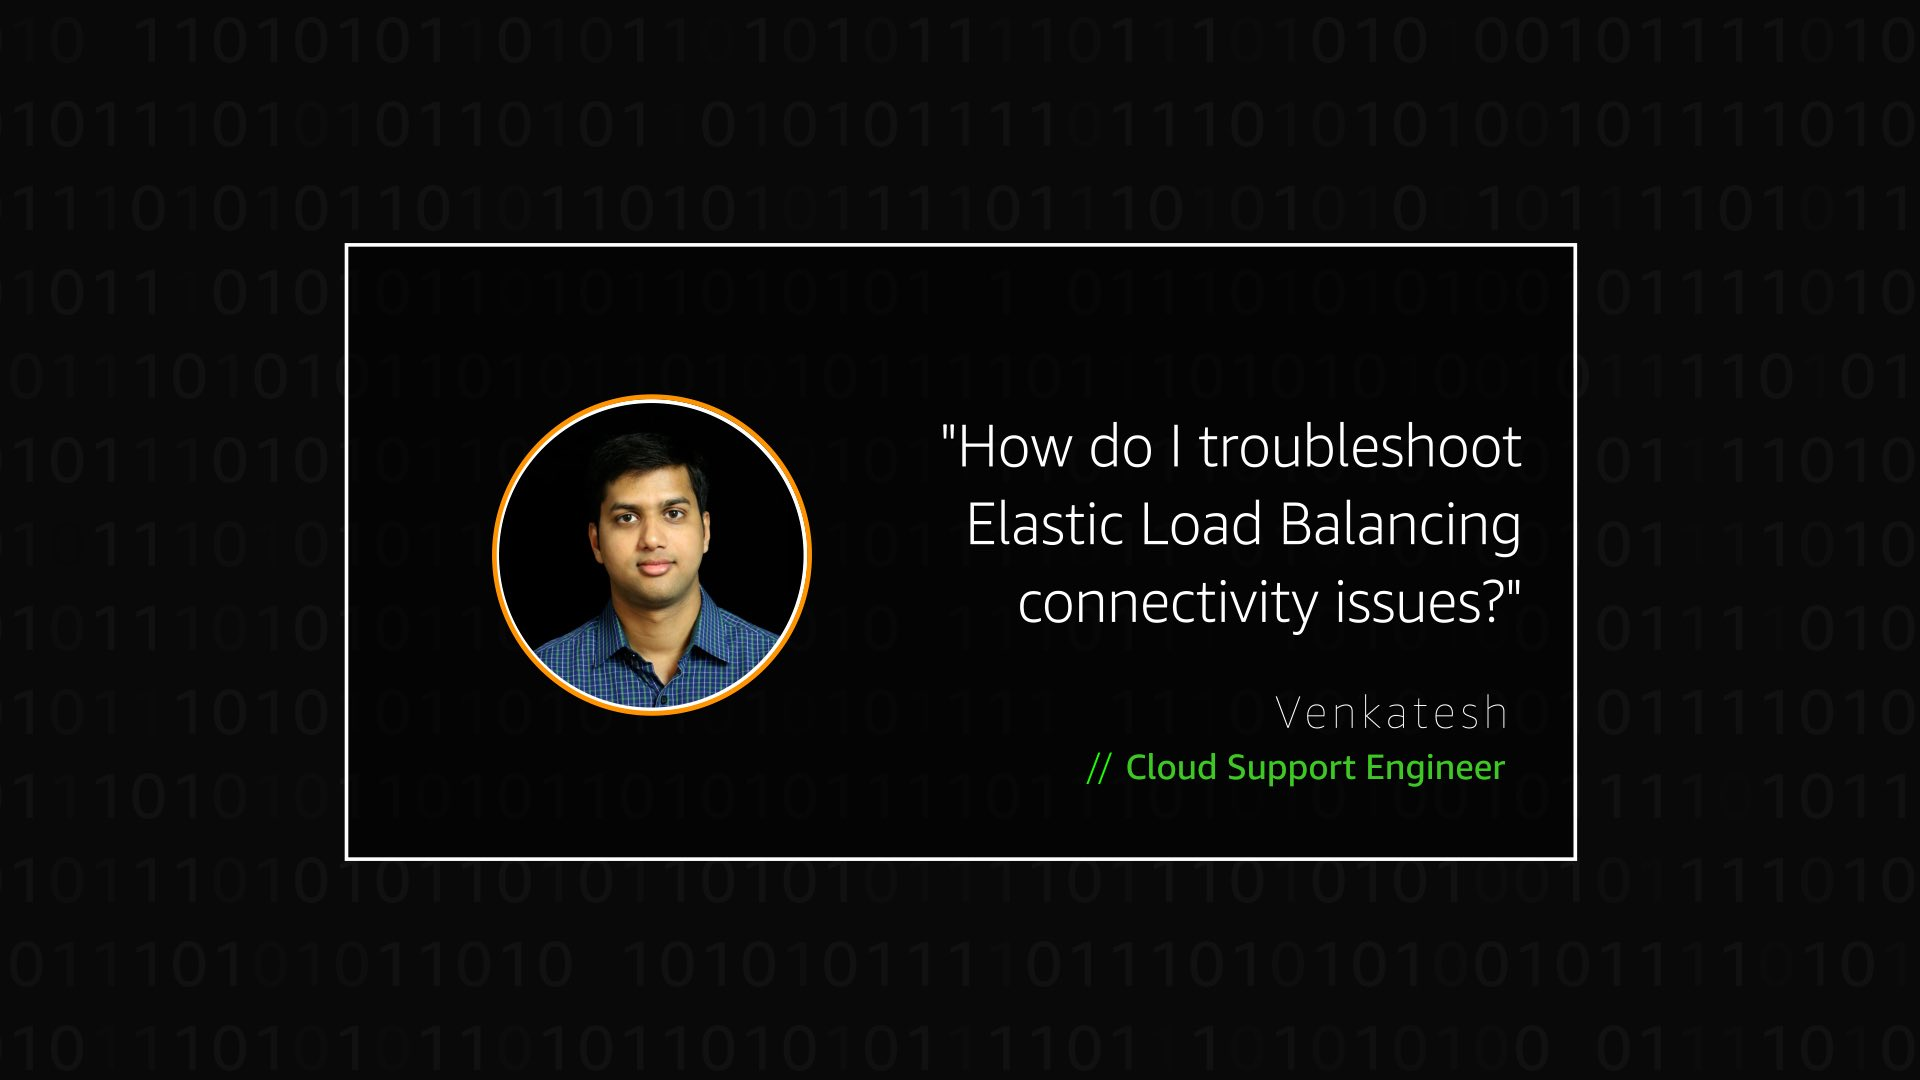 Watch Venkatesh's video to learn more